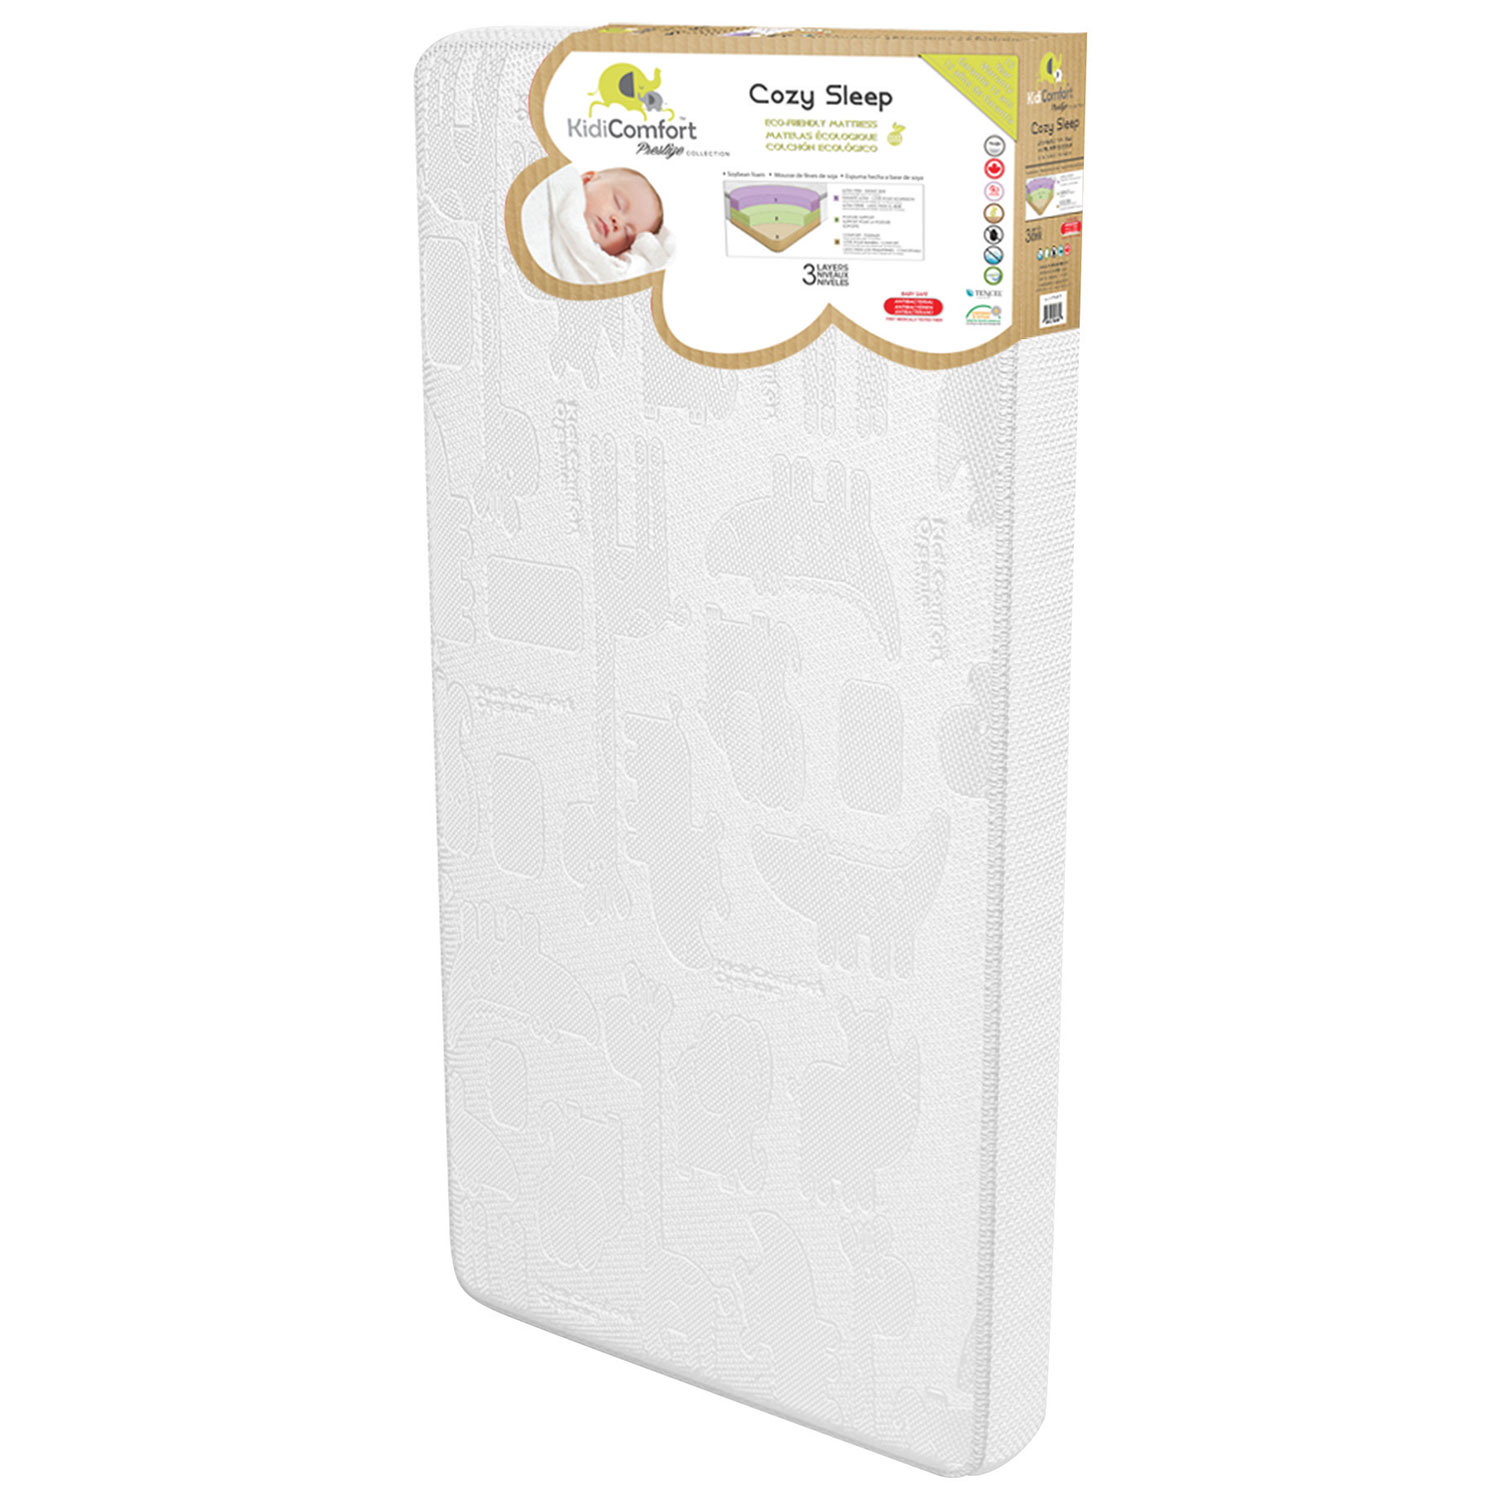 Kidiway Kidicomfort Antibacterial Cozy Sleep Mattress Crib